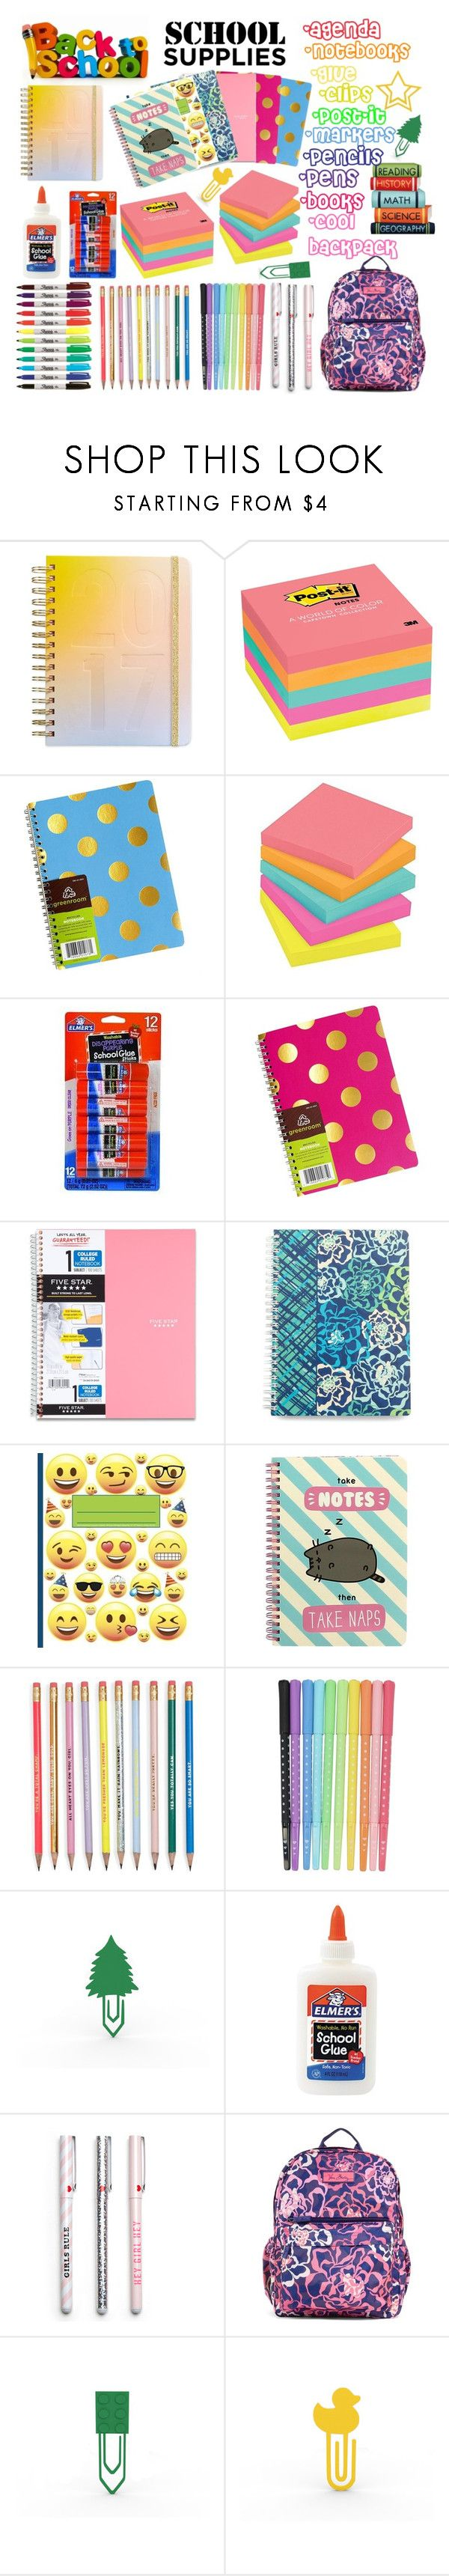 """school supplies"" by slatka-lamija ❤ liked on Polyvore featuring interior, interiors, interior design, home, home decor, interior decorating, ban.do, Post-It, Vera Bradley and Pusheen"